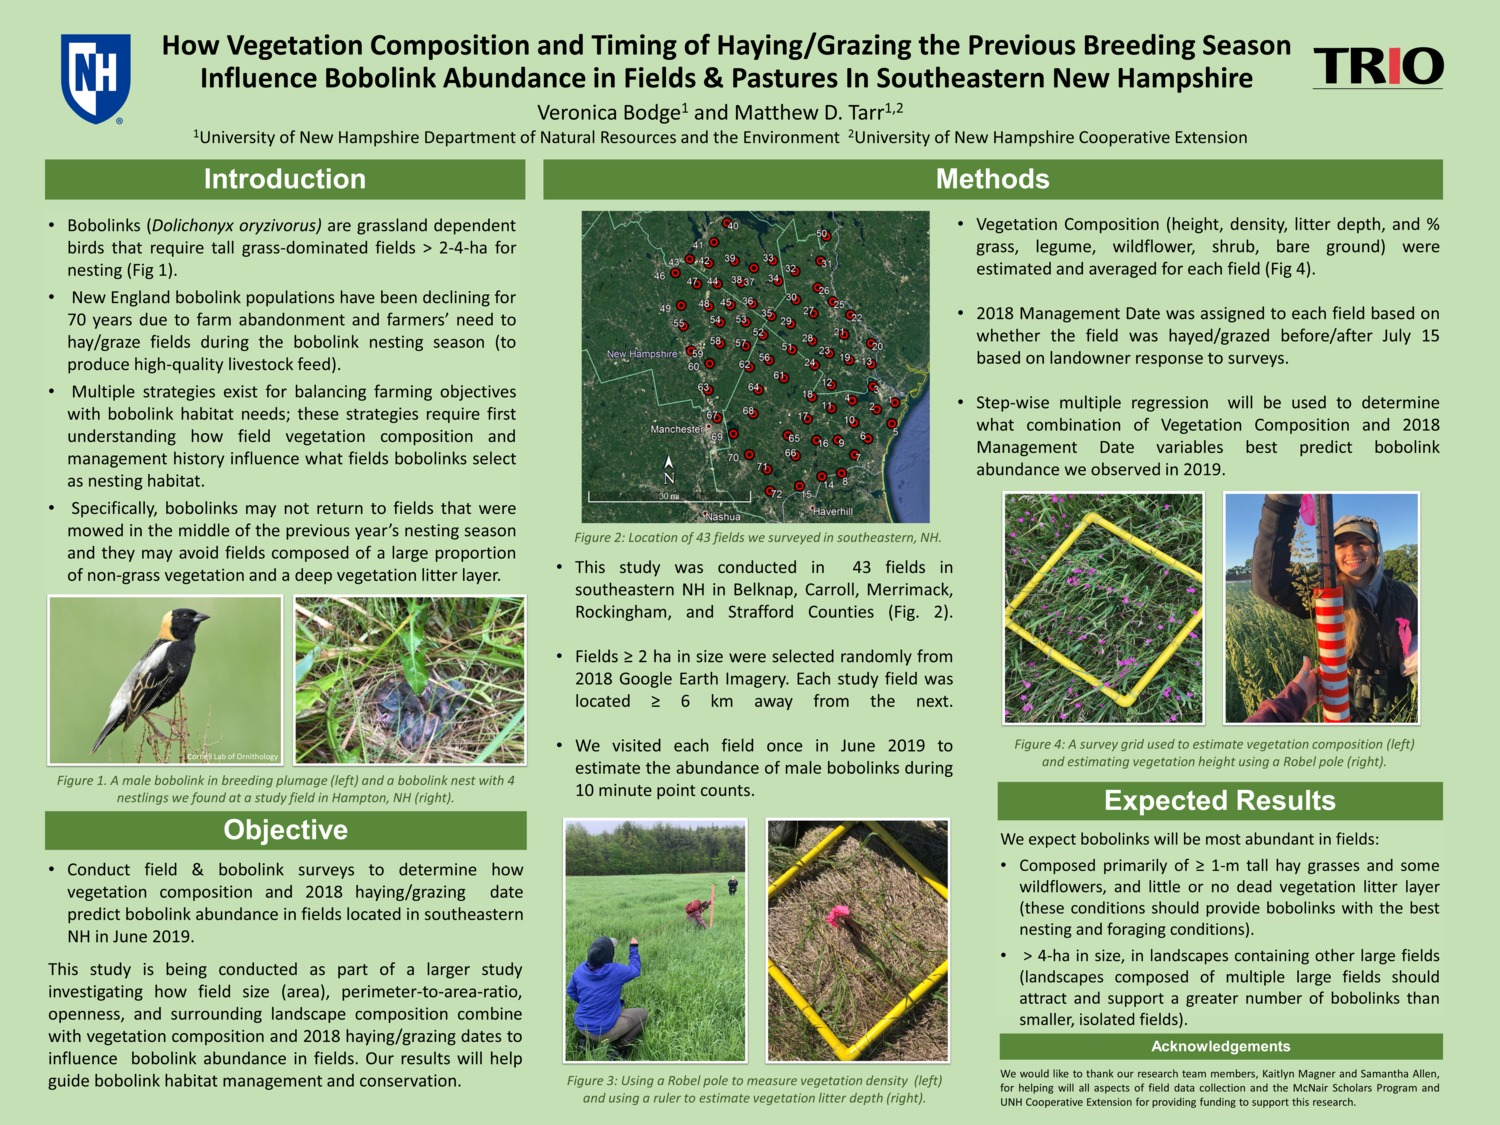 How Vegetation Composition And Timing Of Haying/Grazing The Previous Breeding Season Influence Bobolink Abundance In Fields & Pastures In Southeastern New Hampshire by vlb11